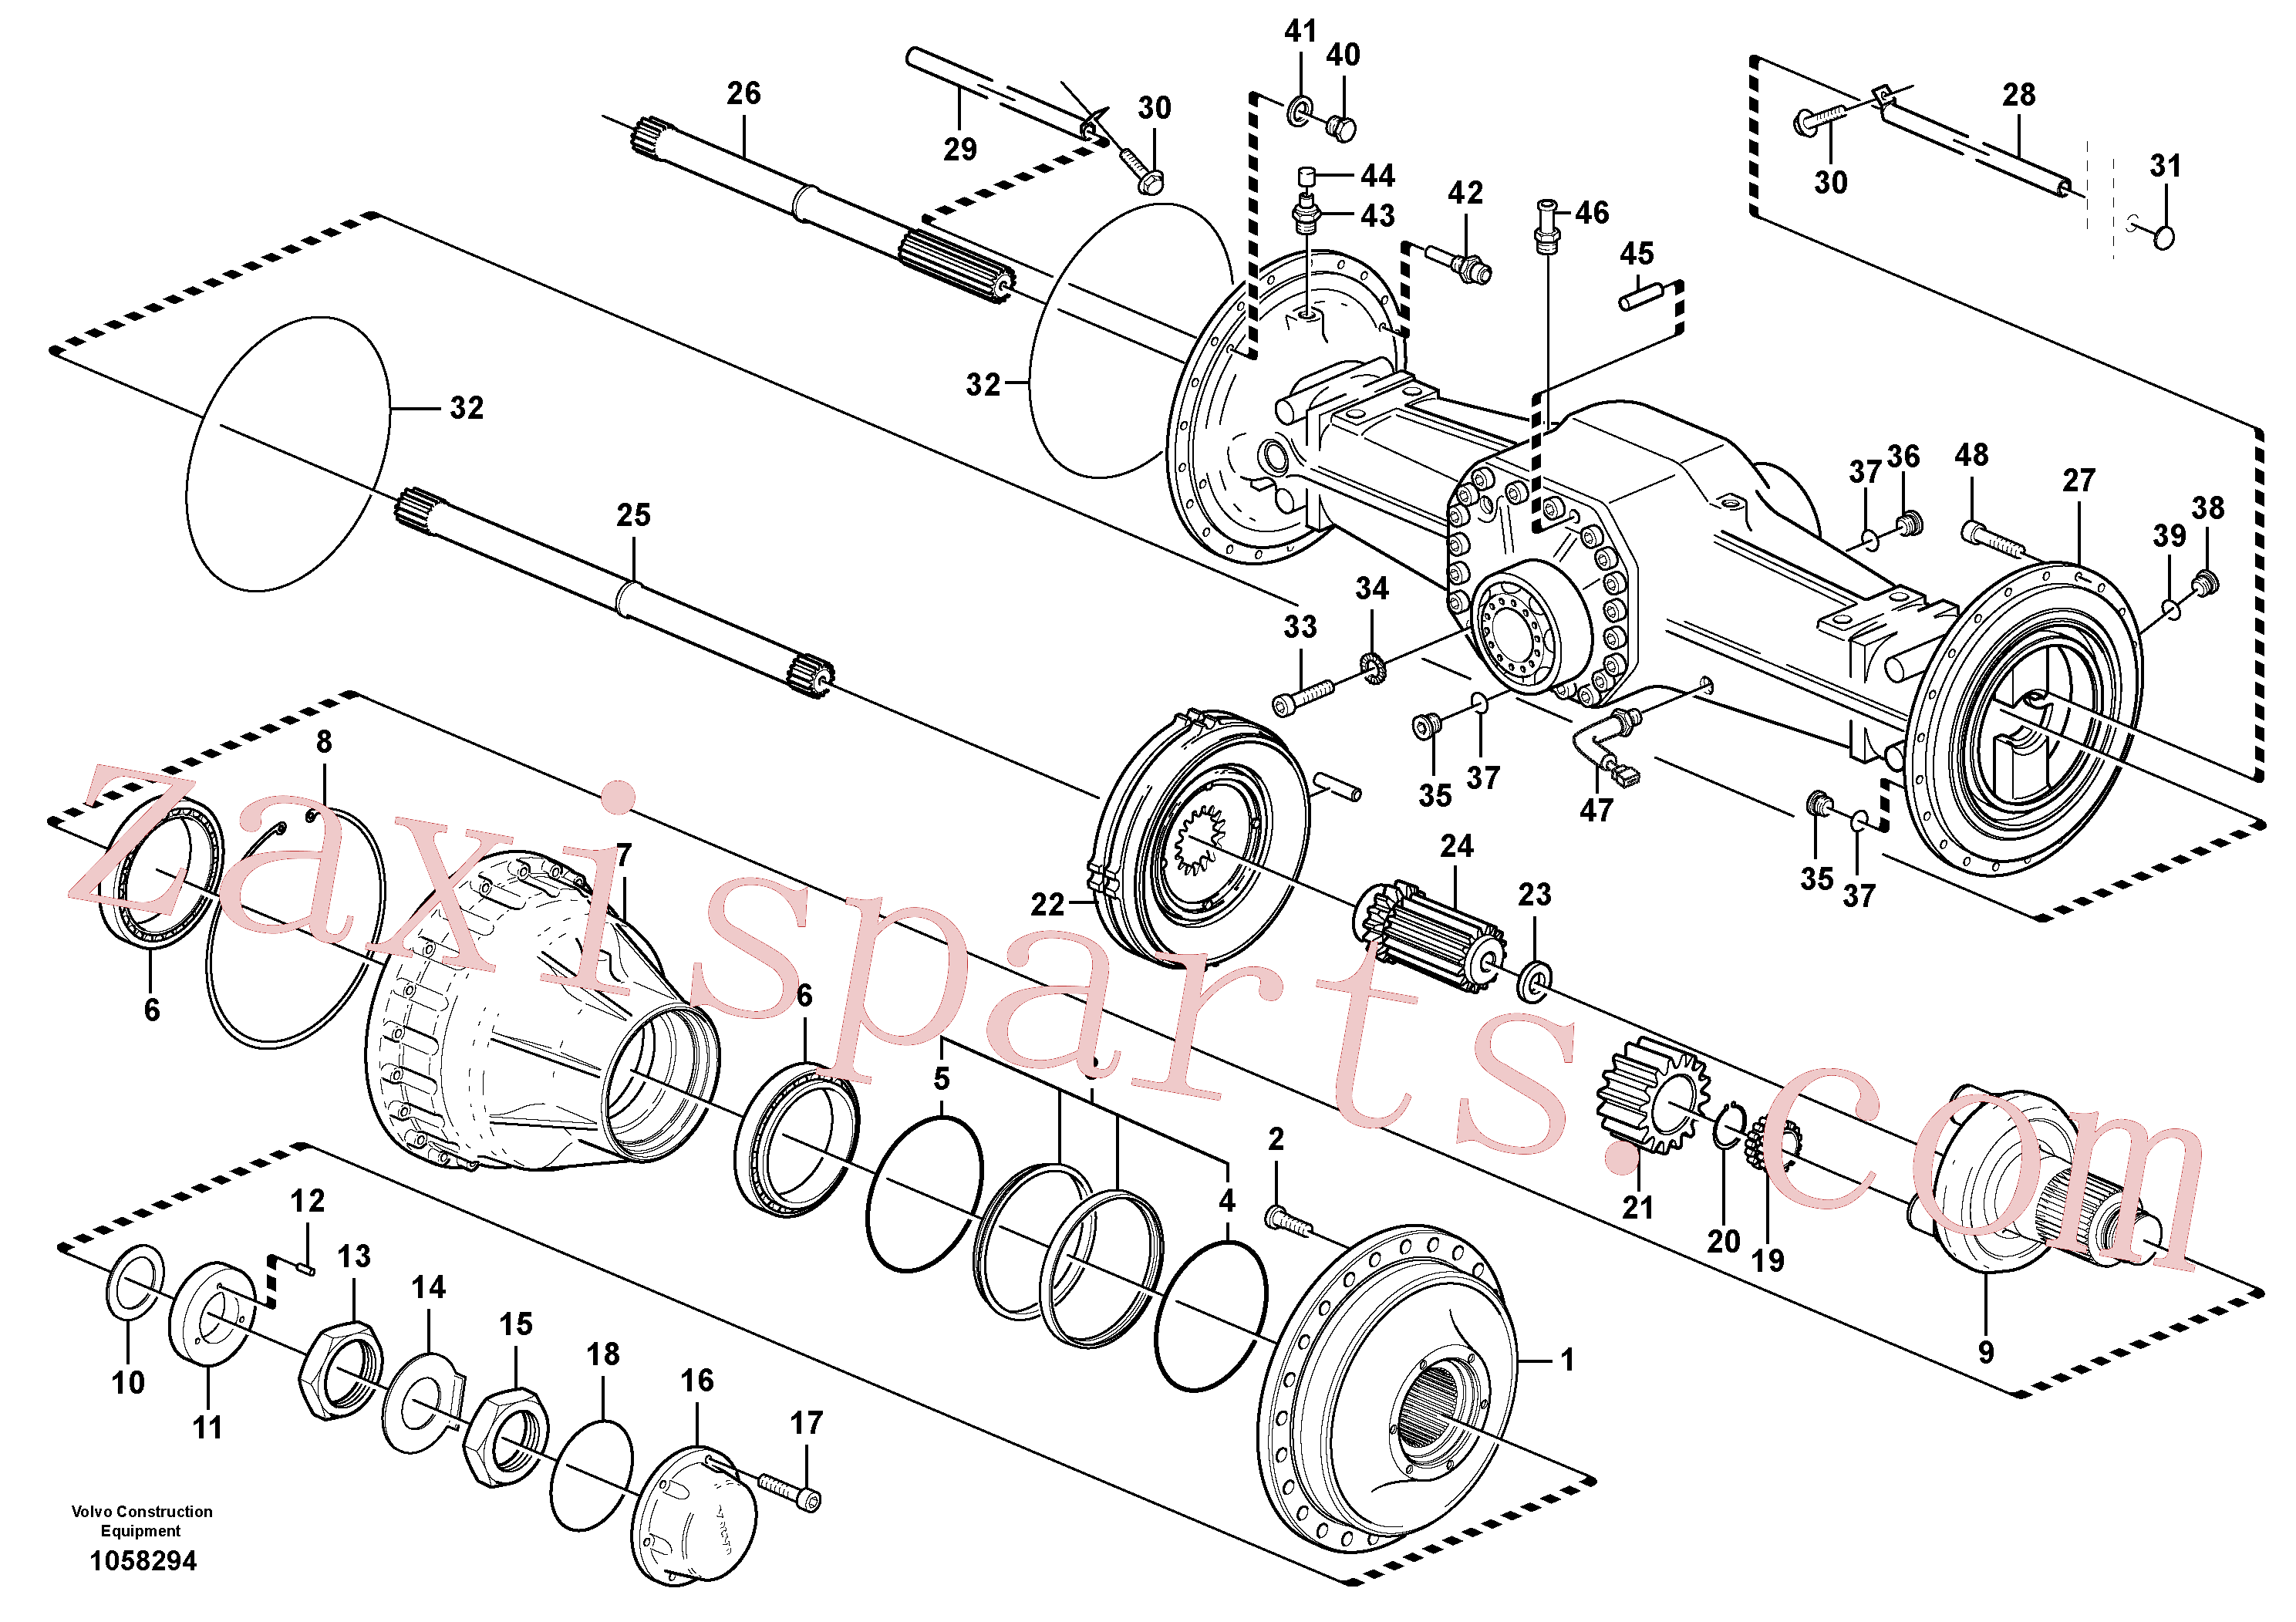 SA9541-01065 for Volvo Planetary axle, rear(1058294 assembly)